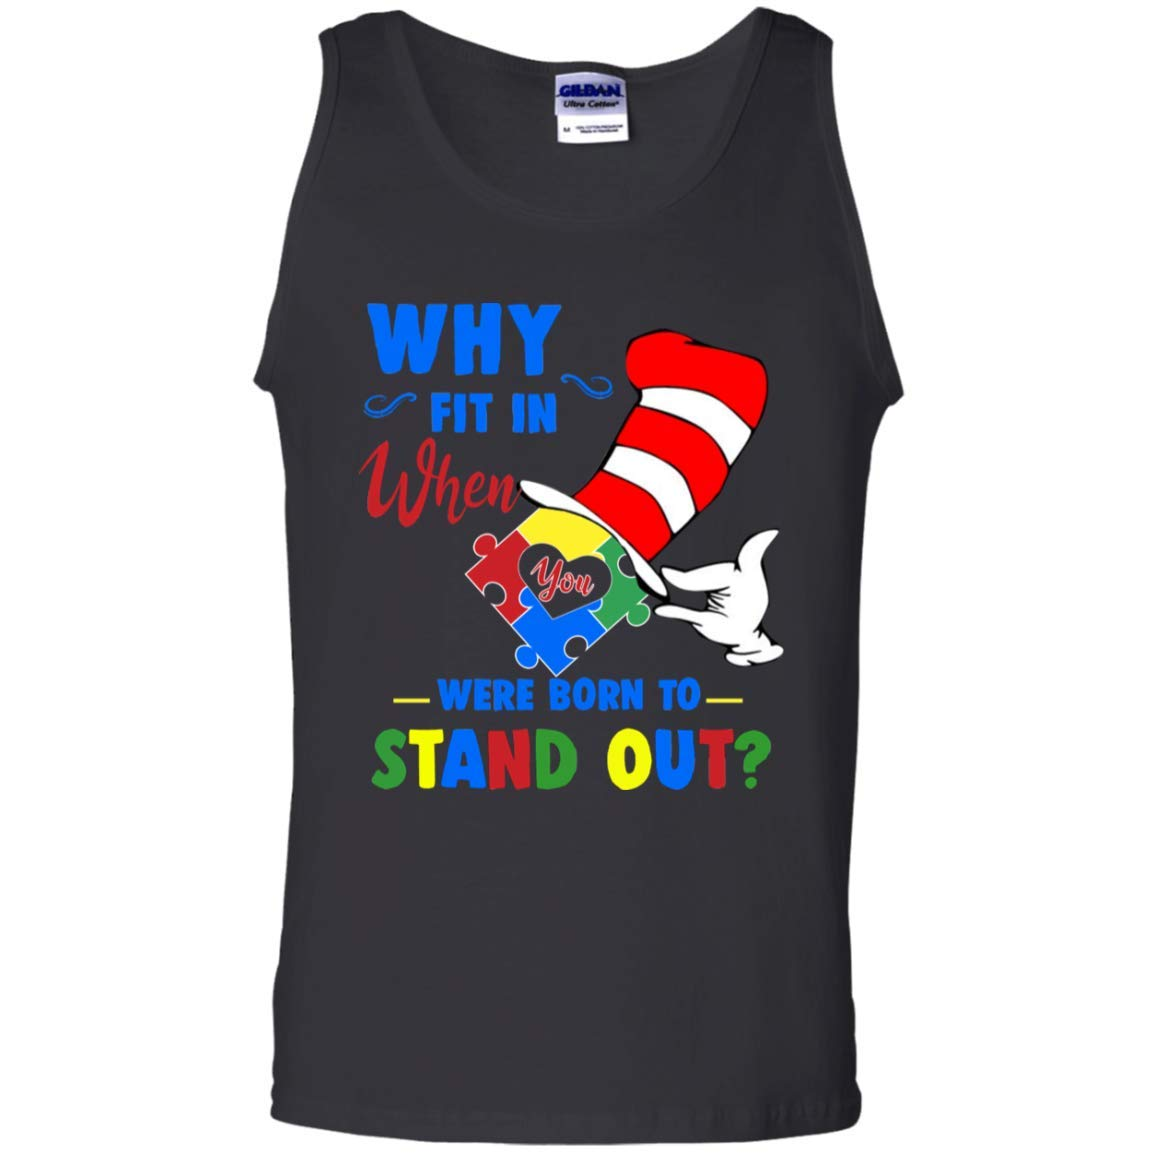 Teely Shop Mens Why Fit In When You Were Born To Stand Out G220 Gildan 100/% Cotton Tank Top